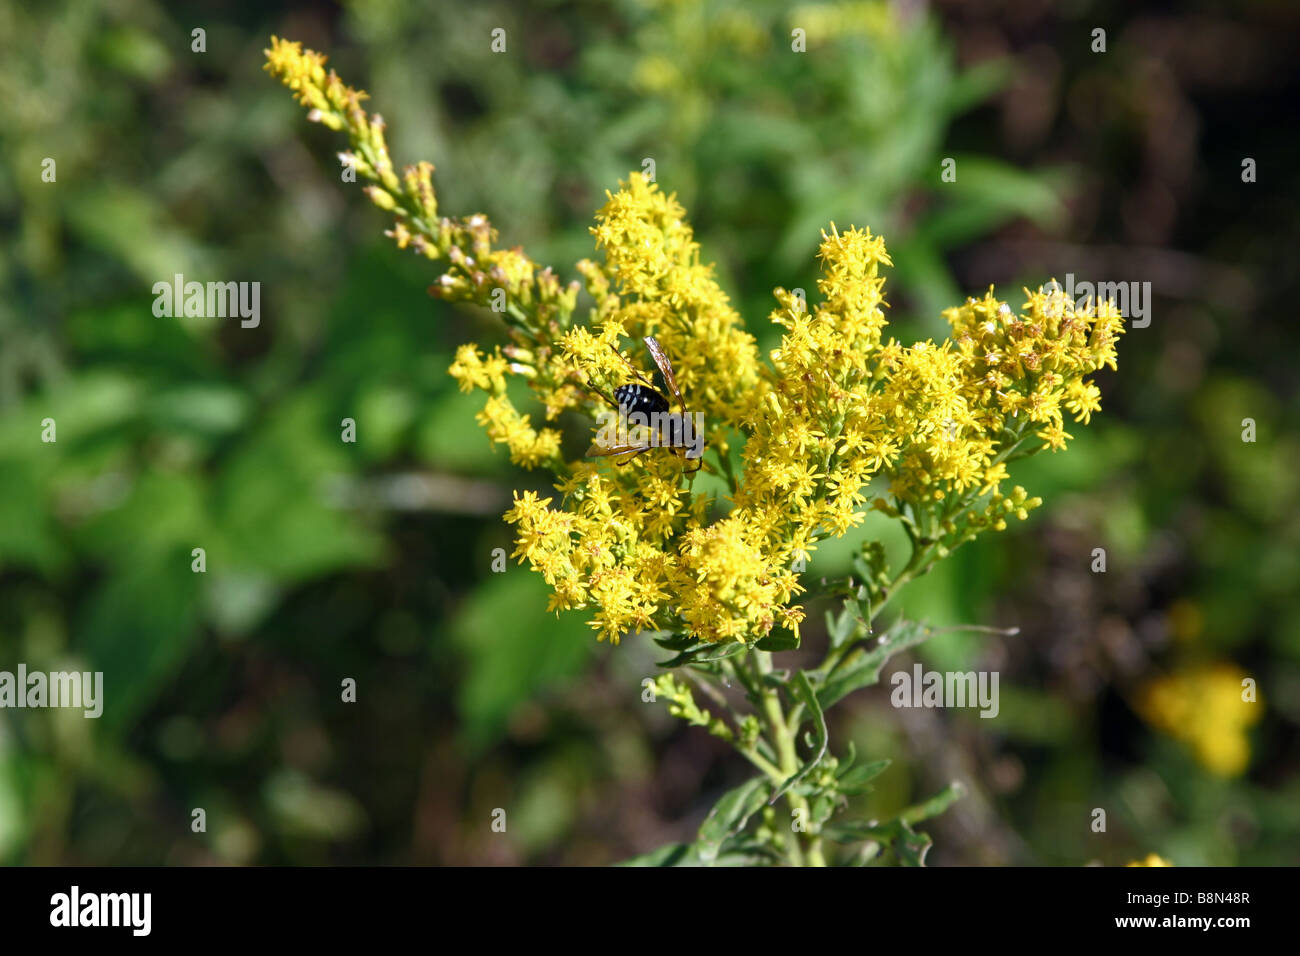 Bald face hornet on yellow weeds Stock Photo